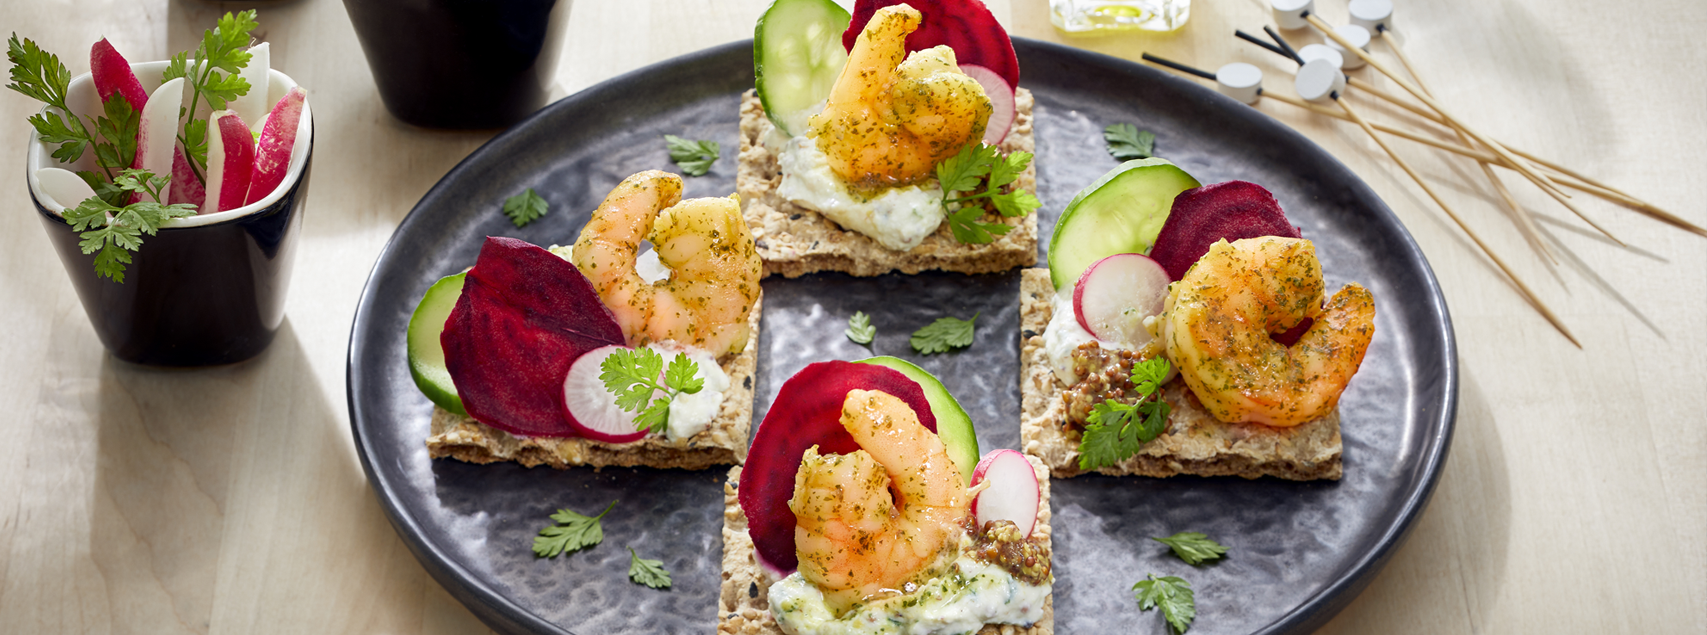 Canapés for aperitifs with organic marinated shrimps and crudities